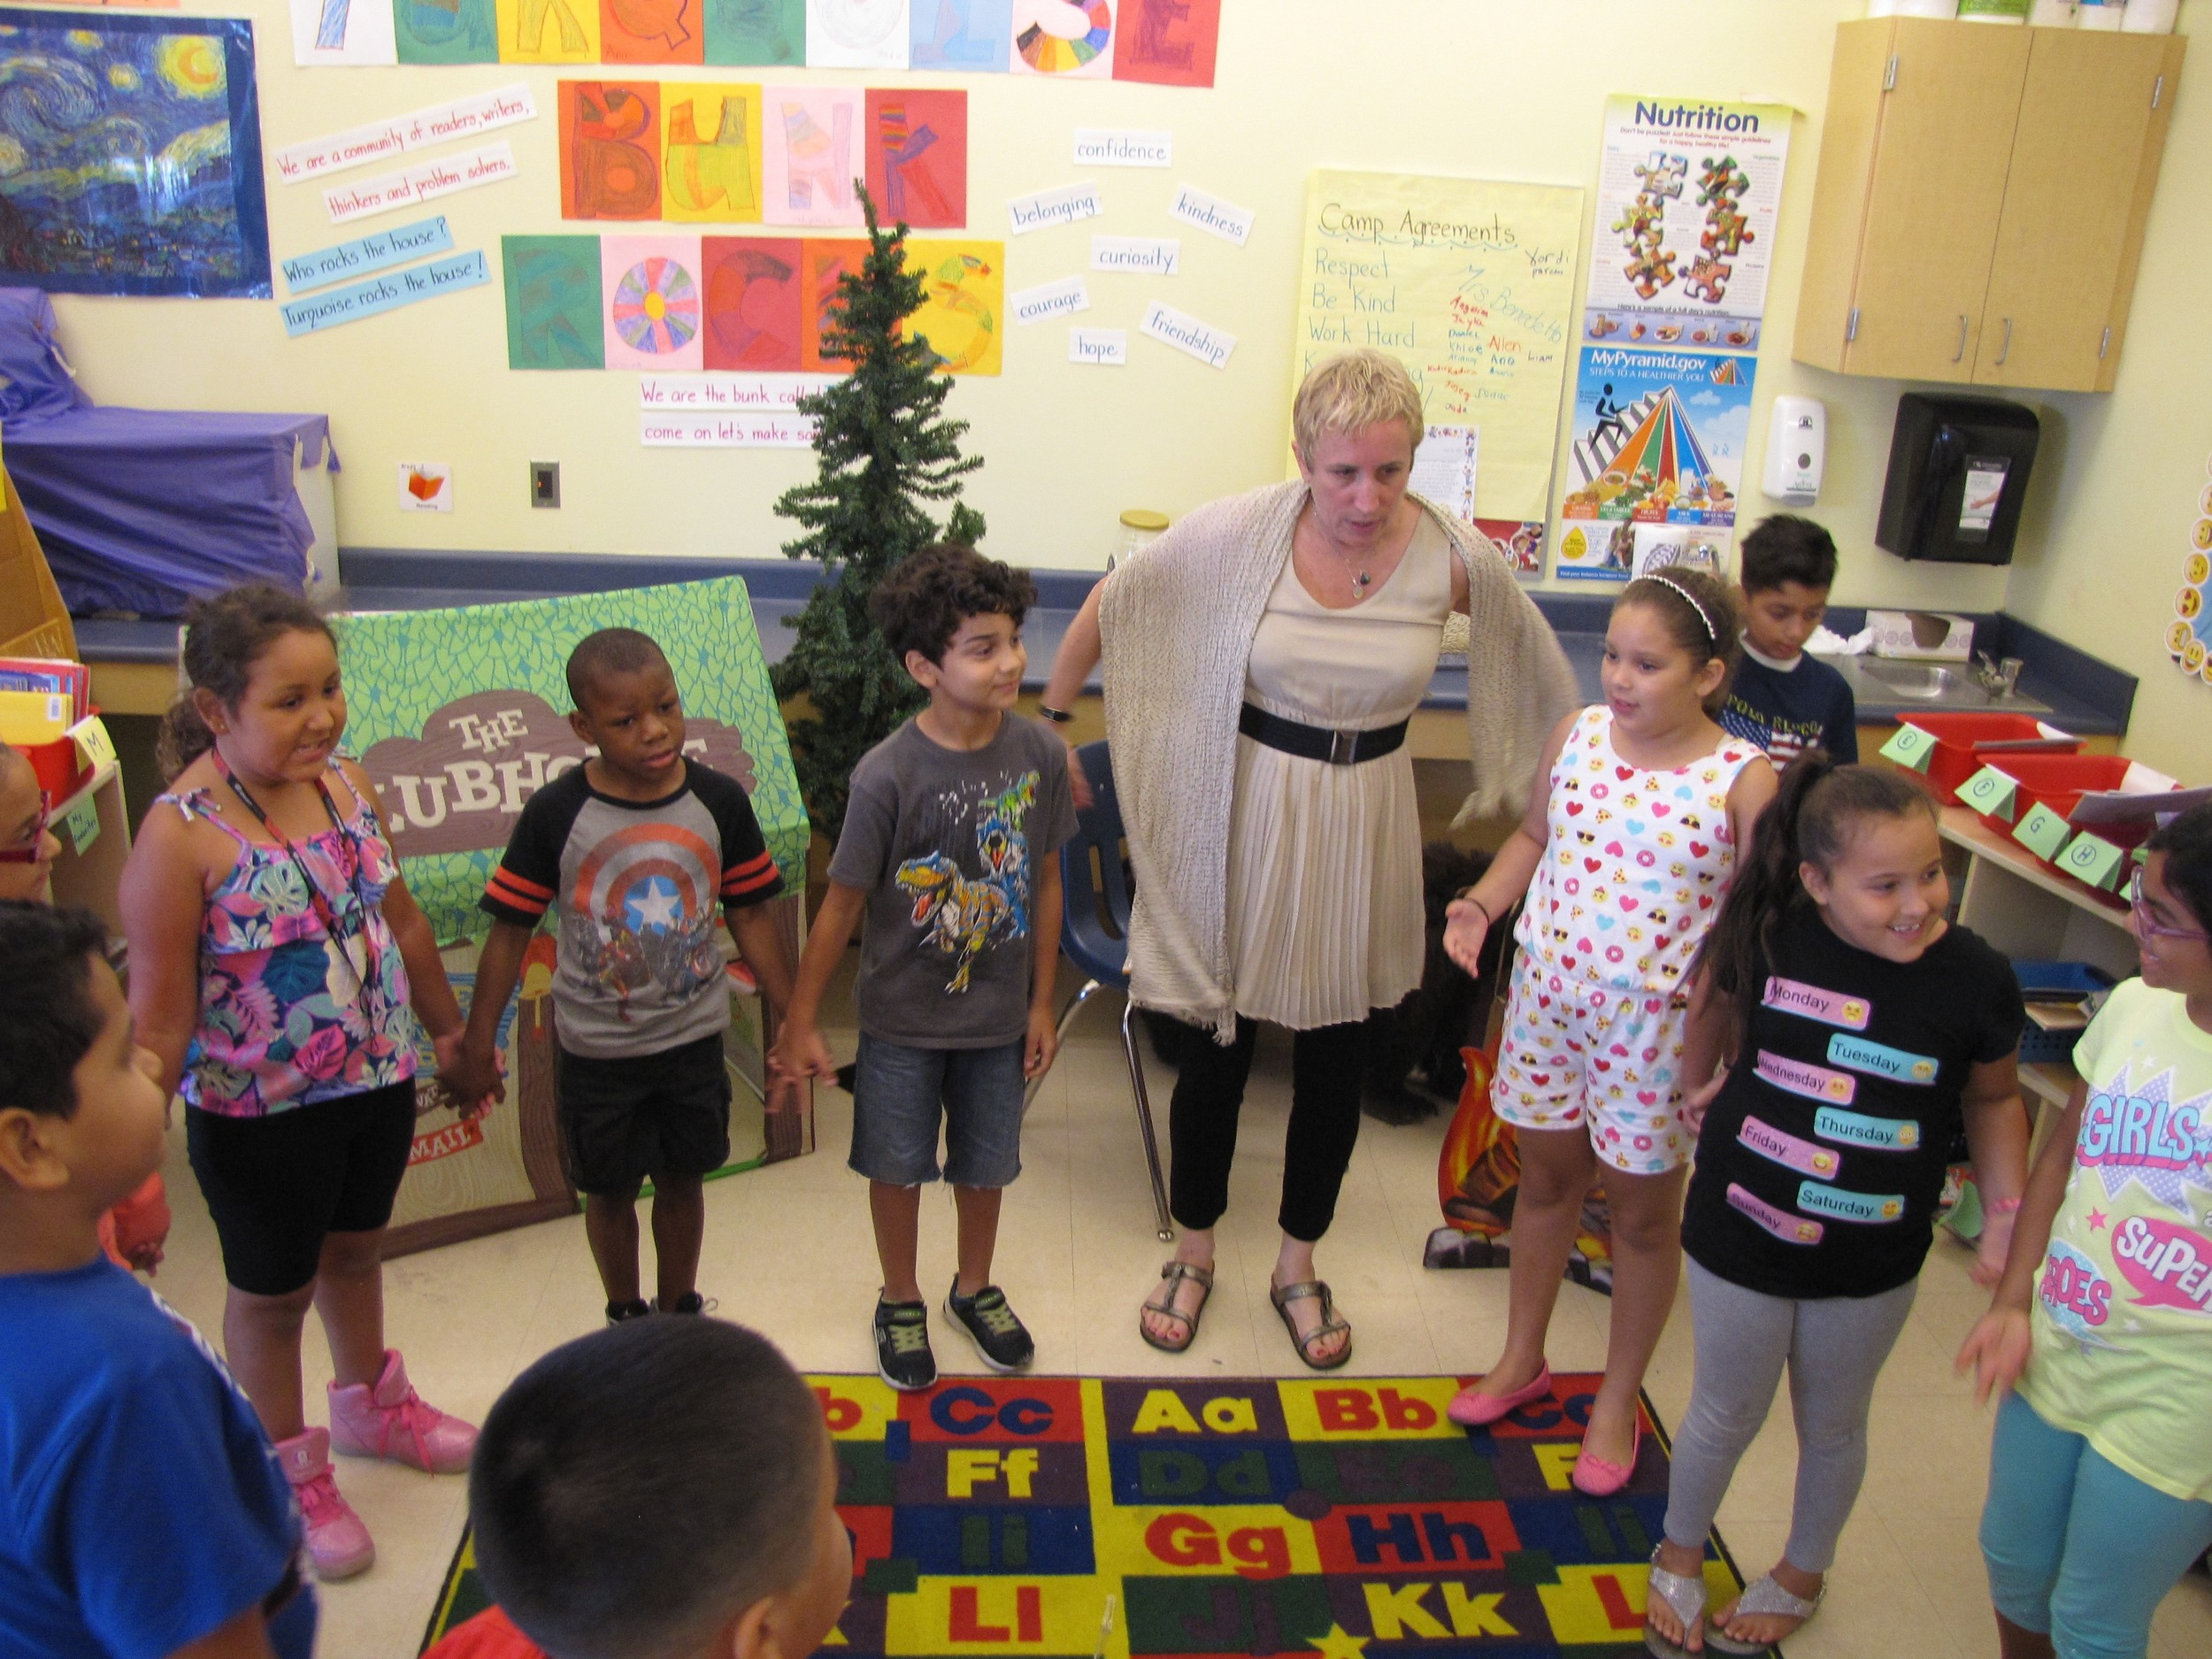 The Freeport Public Schools became one of the first districts on Long Island to host LitCamp, a new four-week summer literacy program created by renowned author and literacy expert Pam Allyn, center.